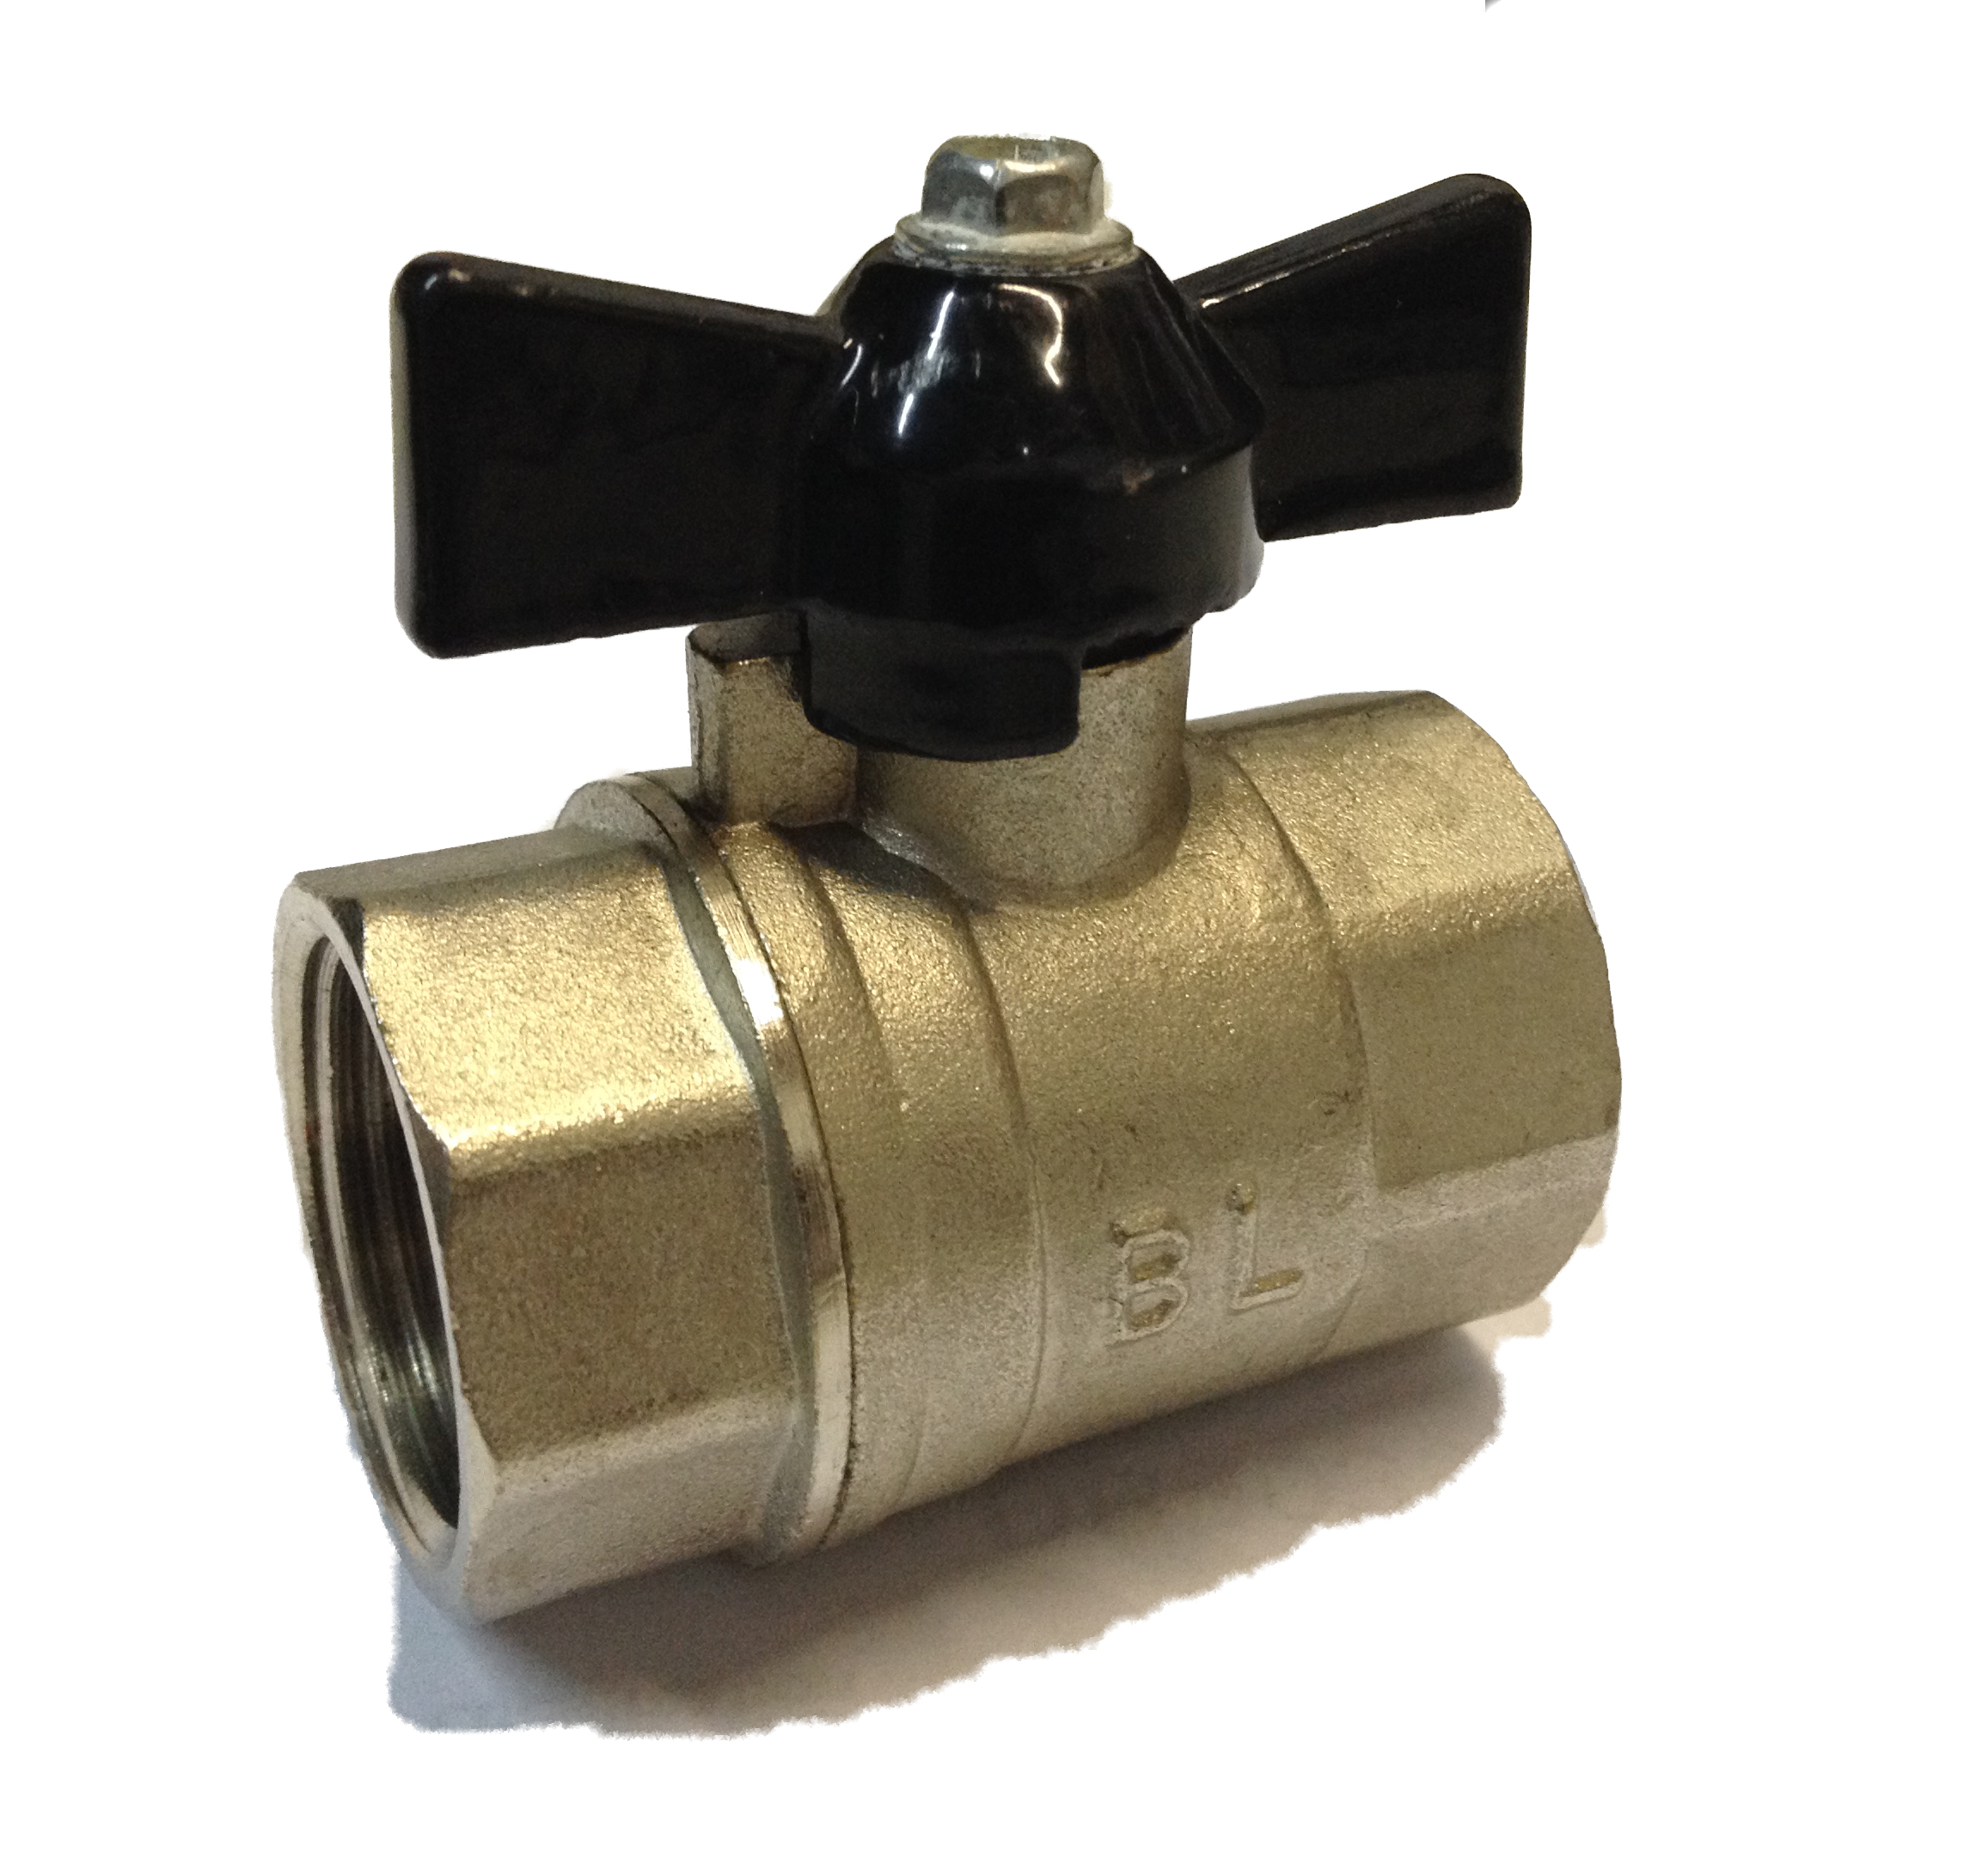 Ball Valve w/ Butterfly 3/4 FxF Black